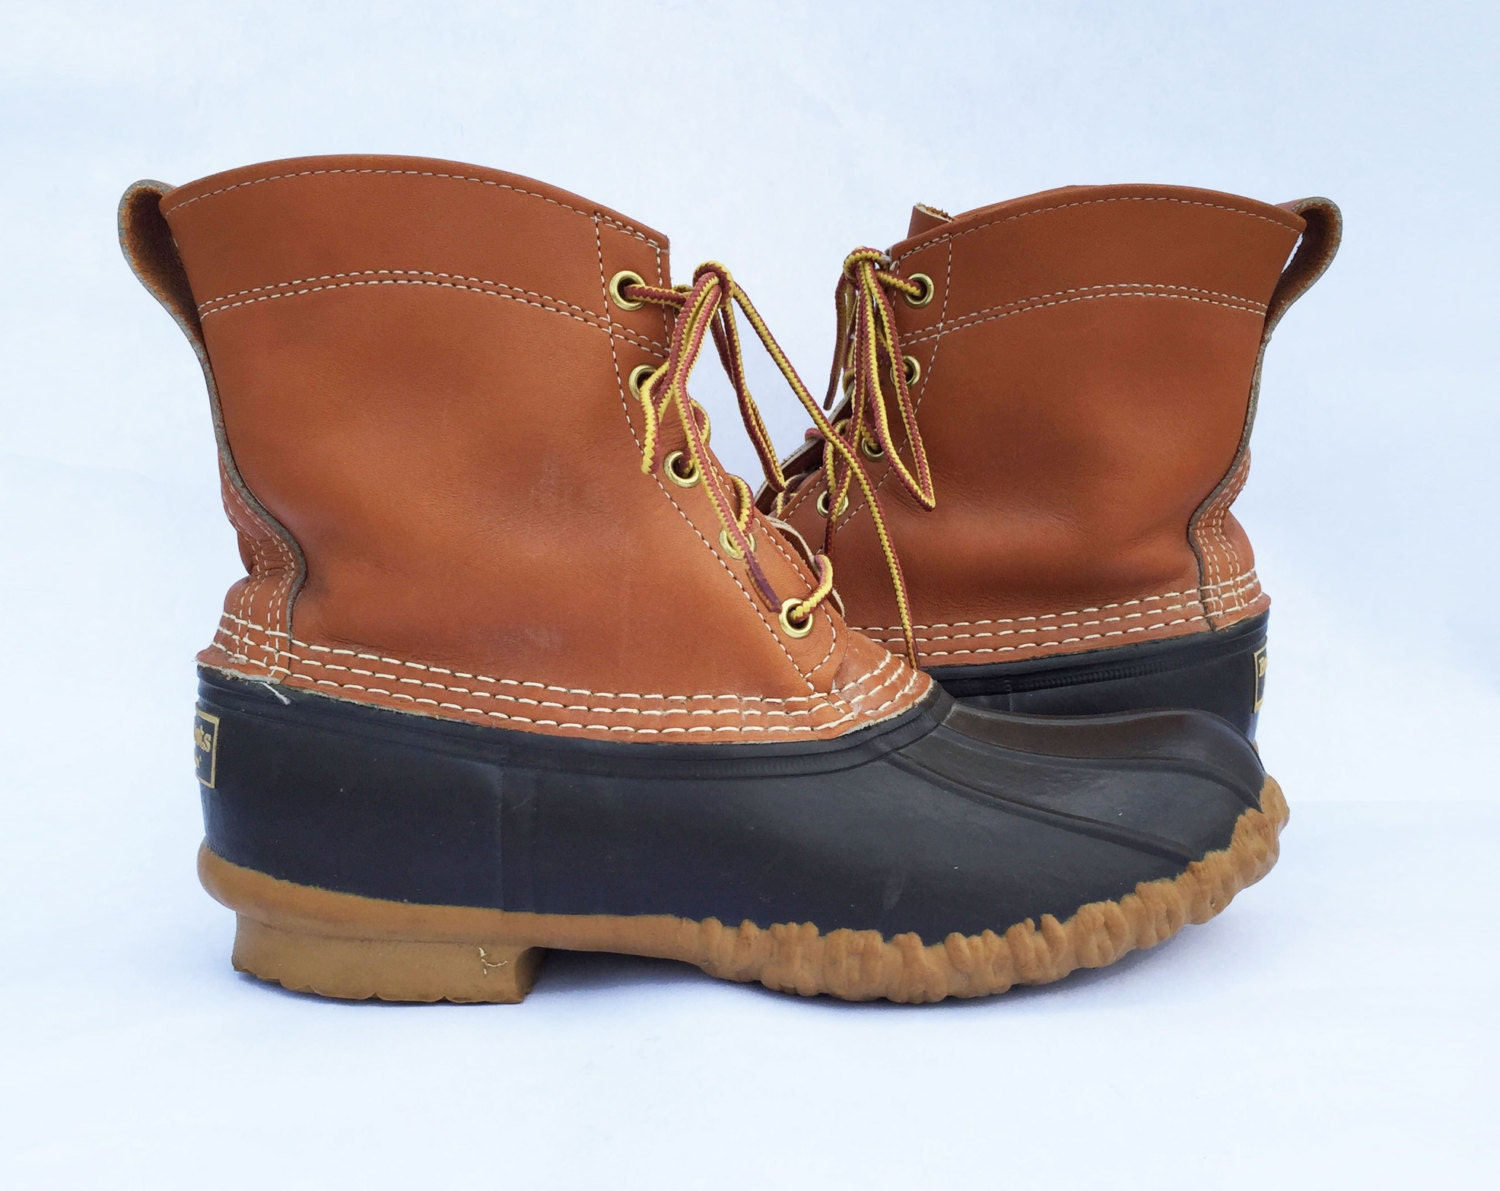 Lastest Women39s Bean Boots By LLBean 8quot Felt Casual Boots  My Shoe